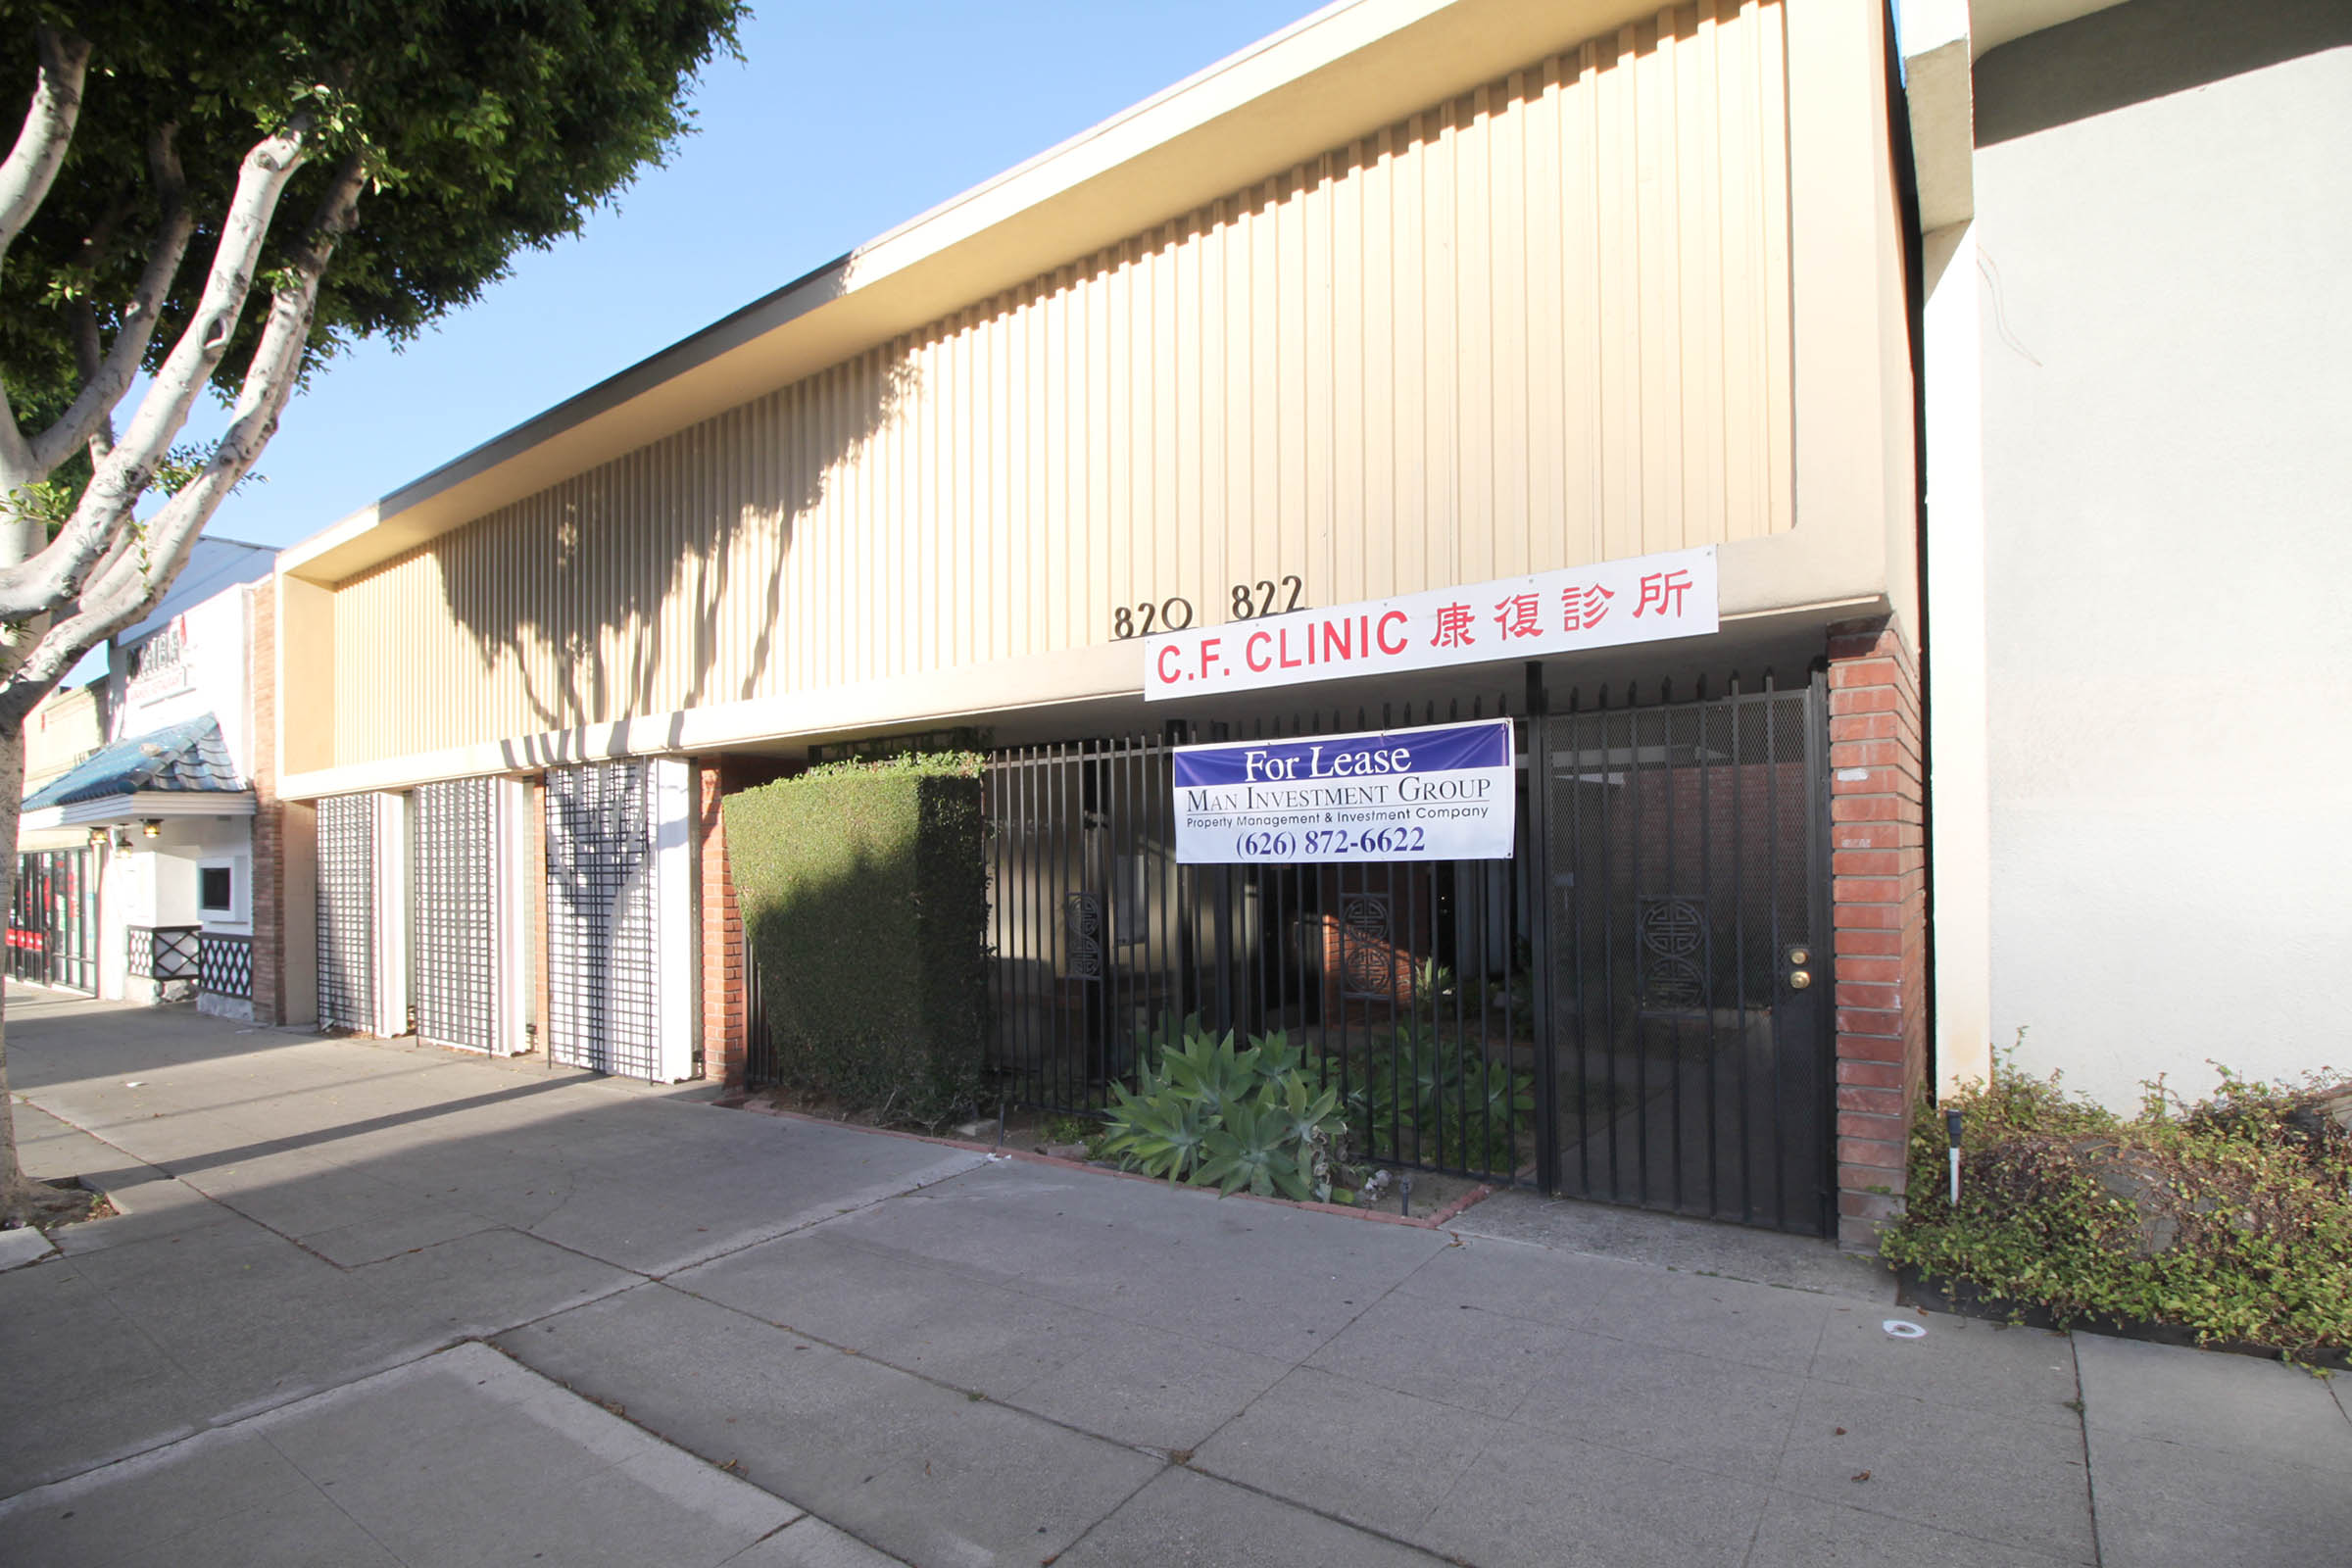 822 S Atlantic Blvd, Monterey Park | For LEASE